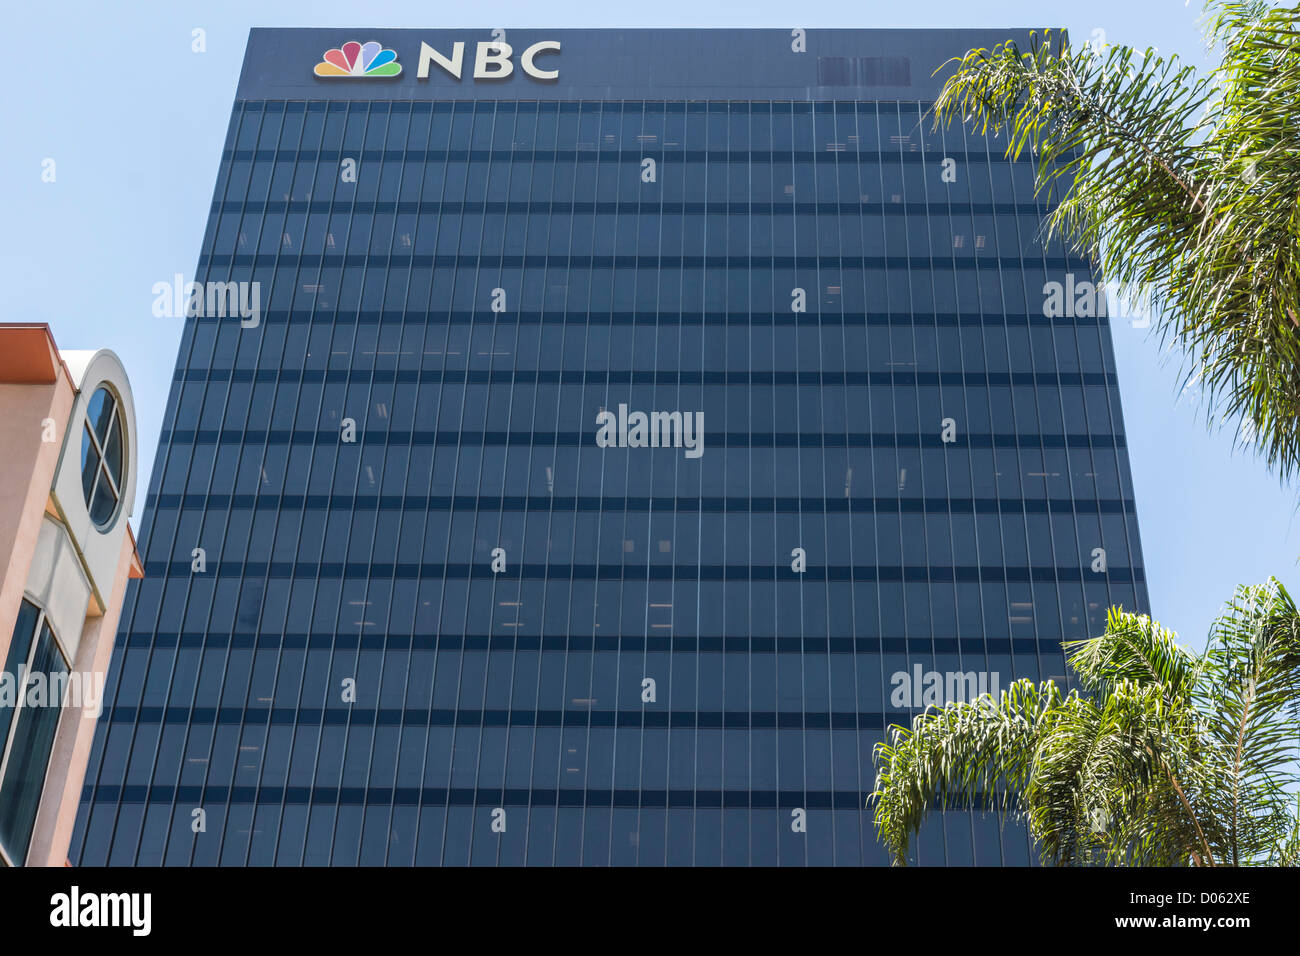 NBC National Broadcasting Corporation HQ in San Diego California. - Stock Image